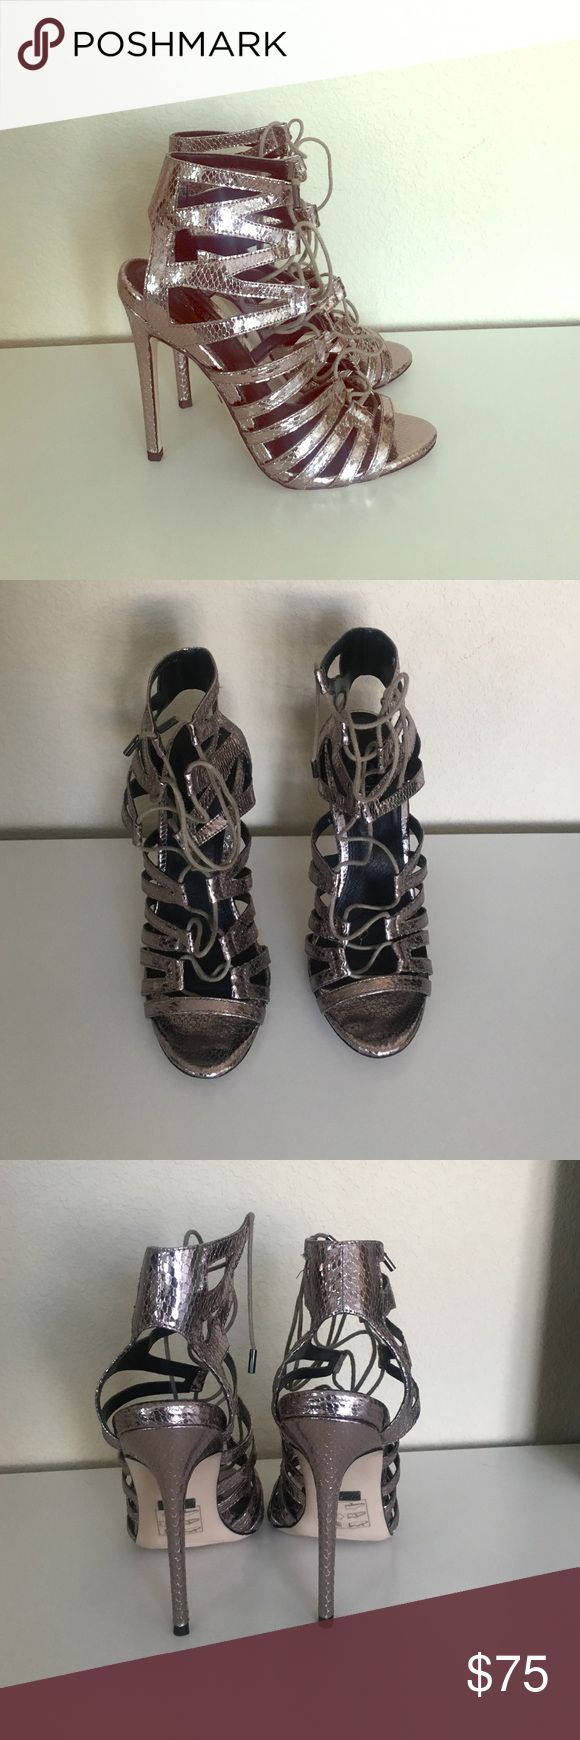 Topshop silver metallic caged sandals Only used once!  Excellent condition.  Bottom shows a little wear from wearing one time but other than that like new.  Size 38 Topshop Shoes Heels